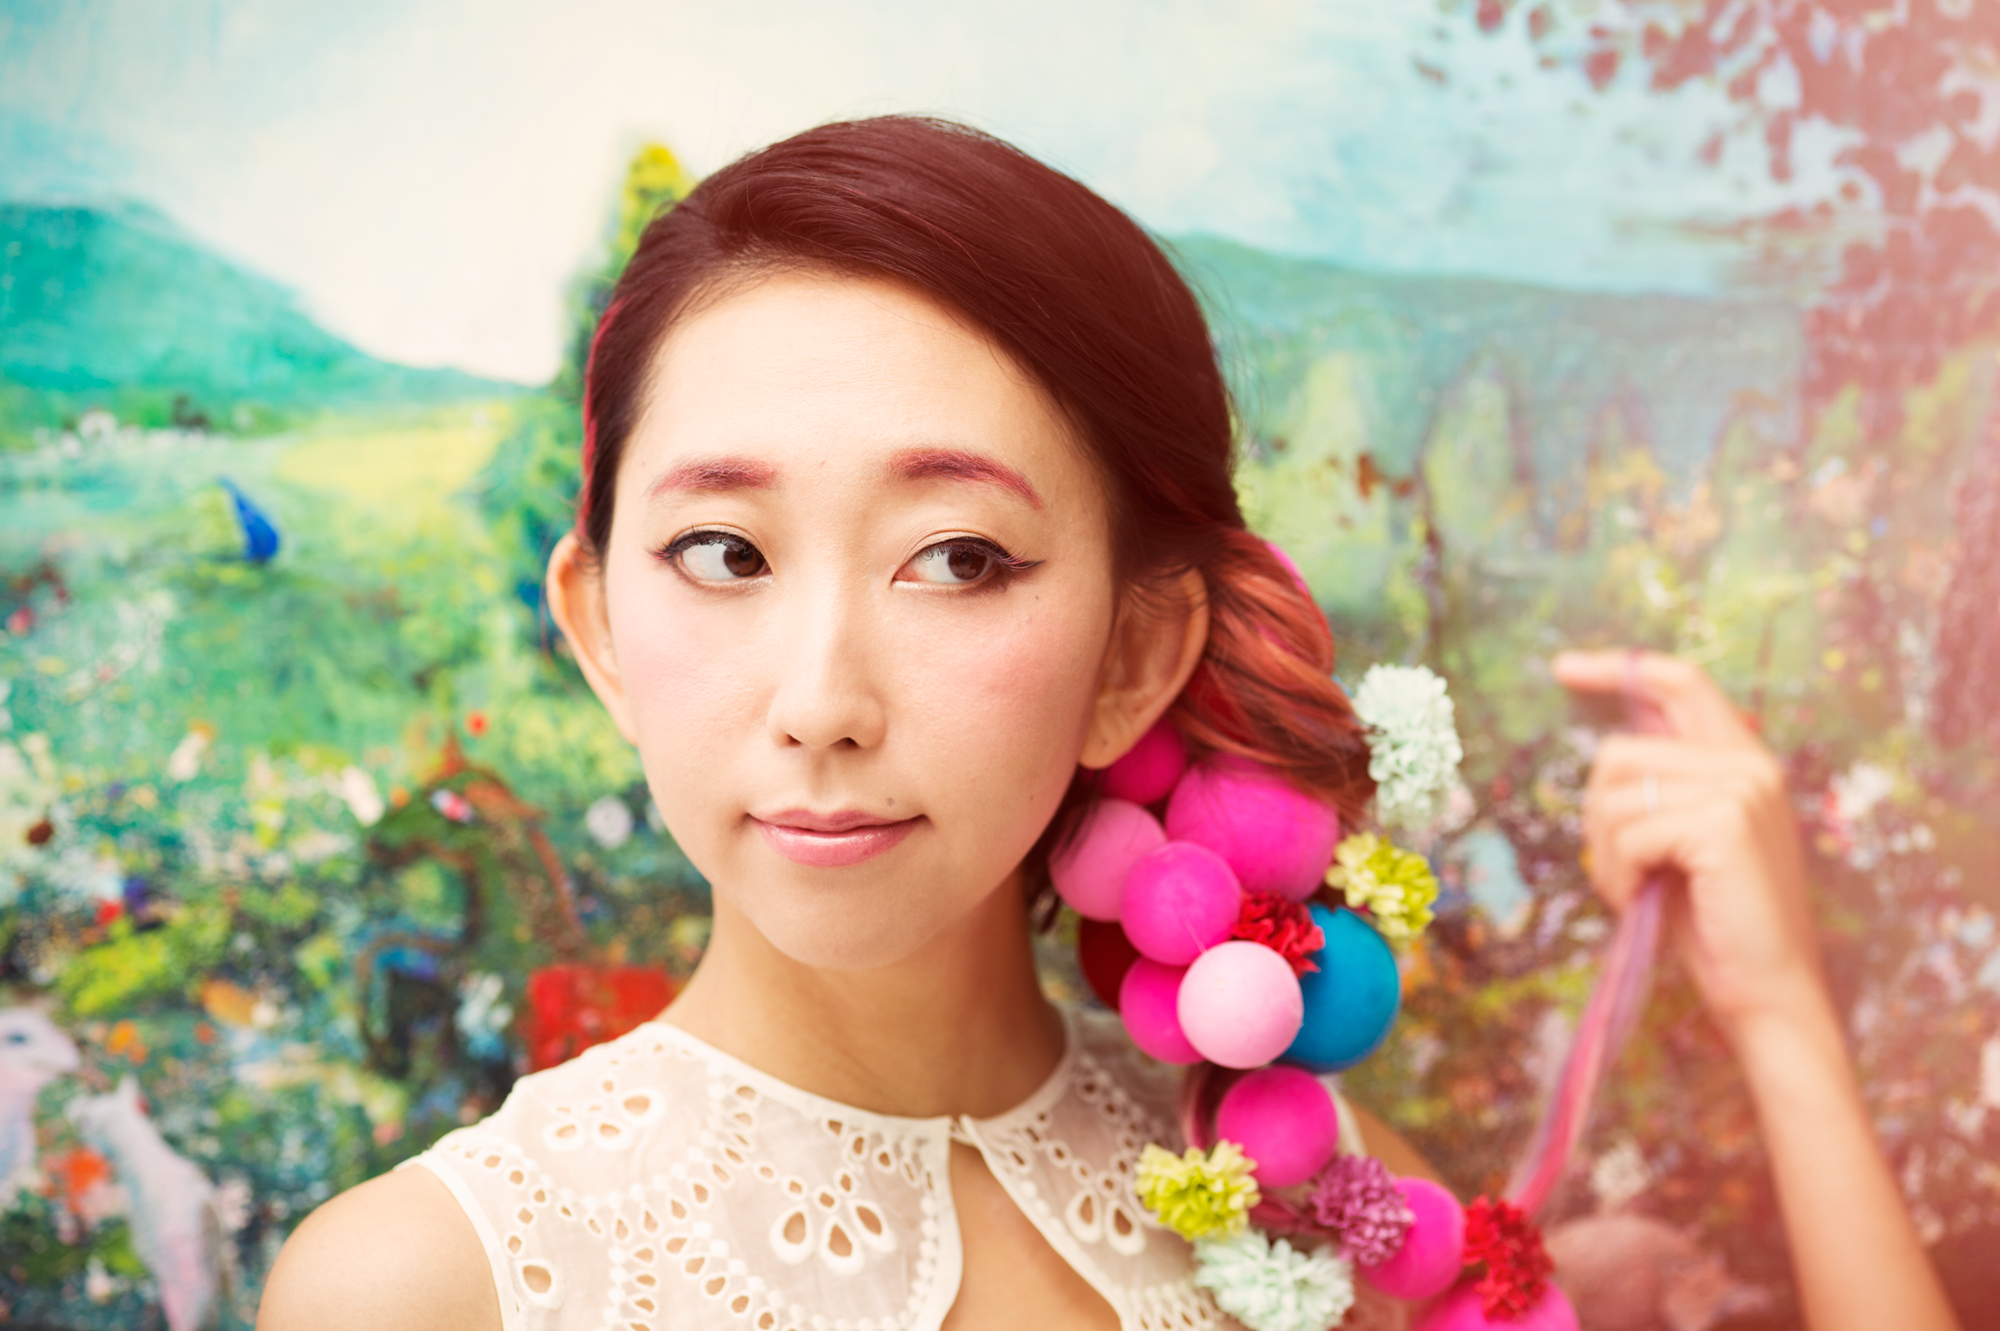 Rie-fu artist photo